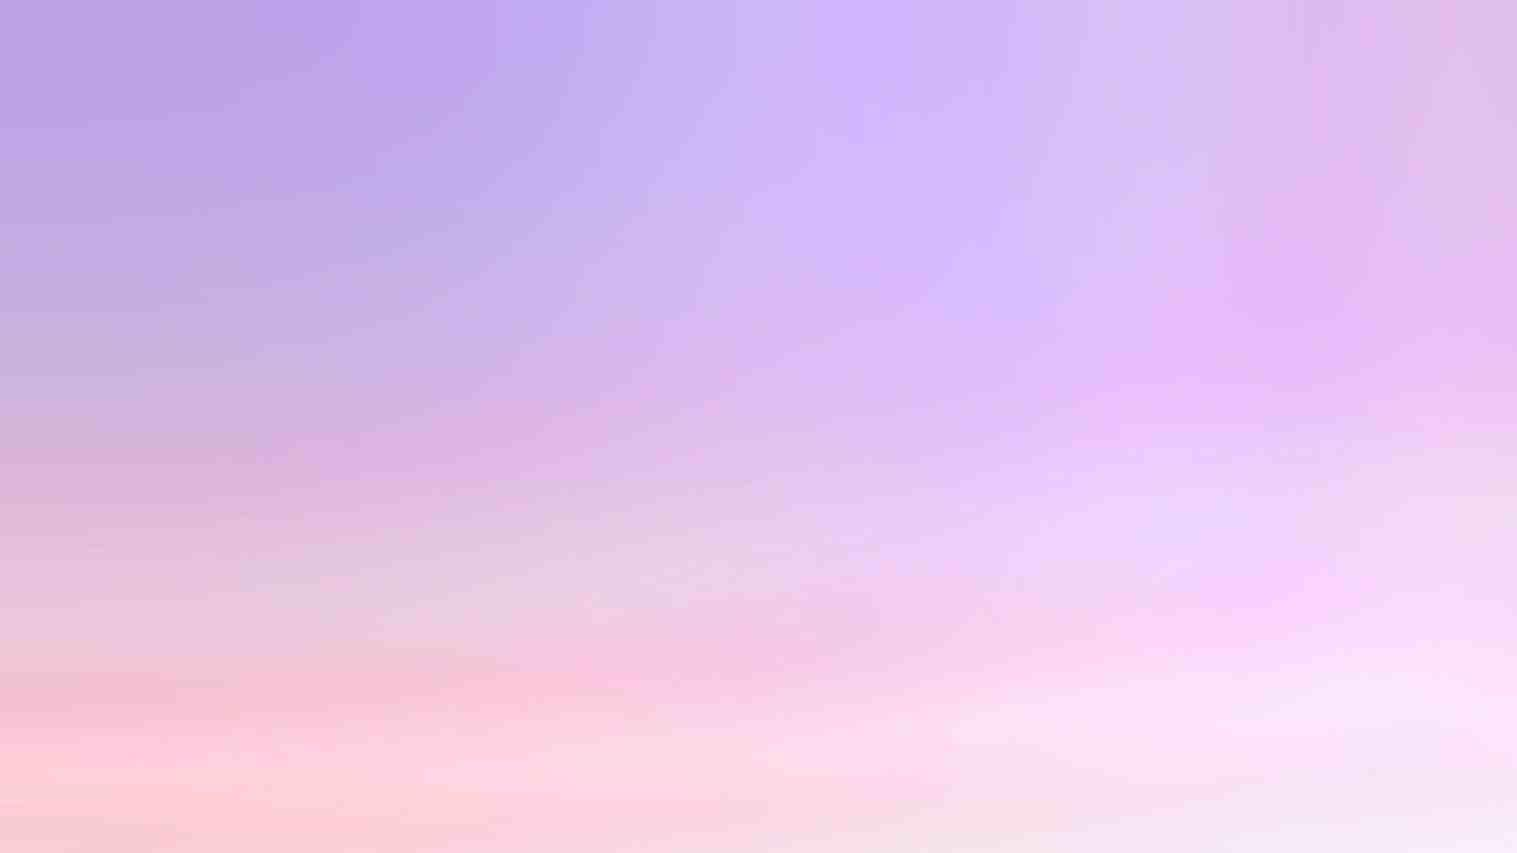 Purple Ombre Background Tumblr: Tumblr Ombre Wallpapers